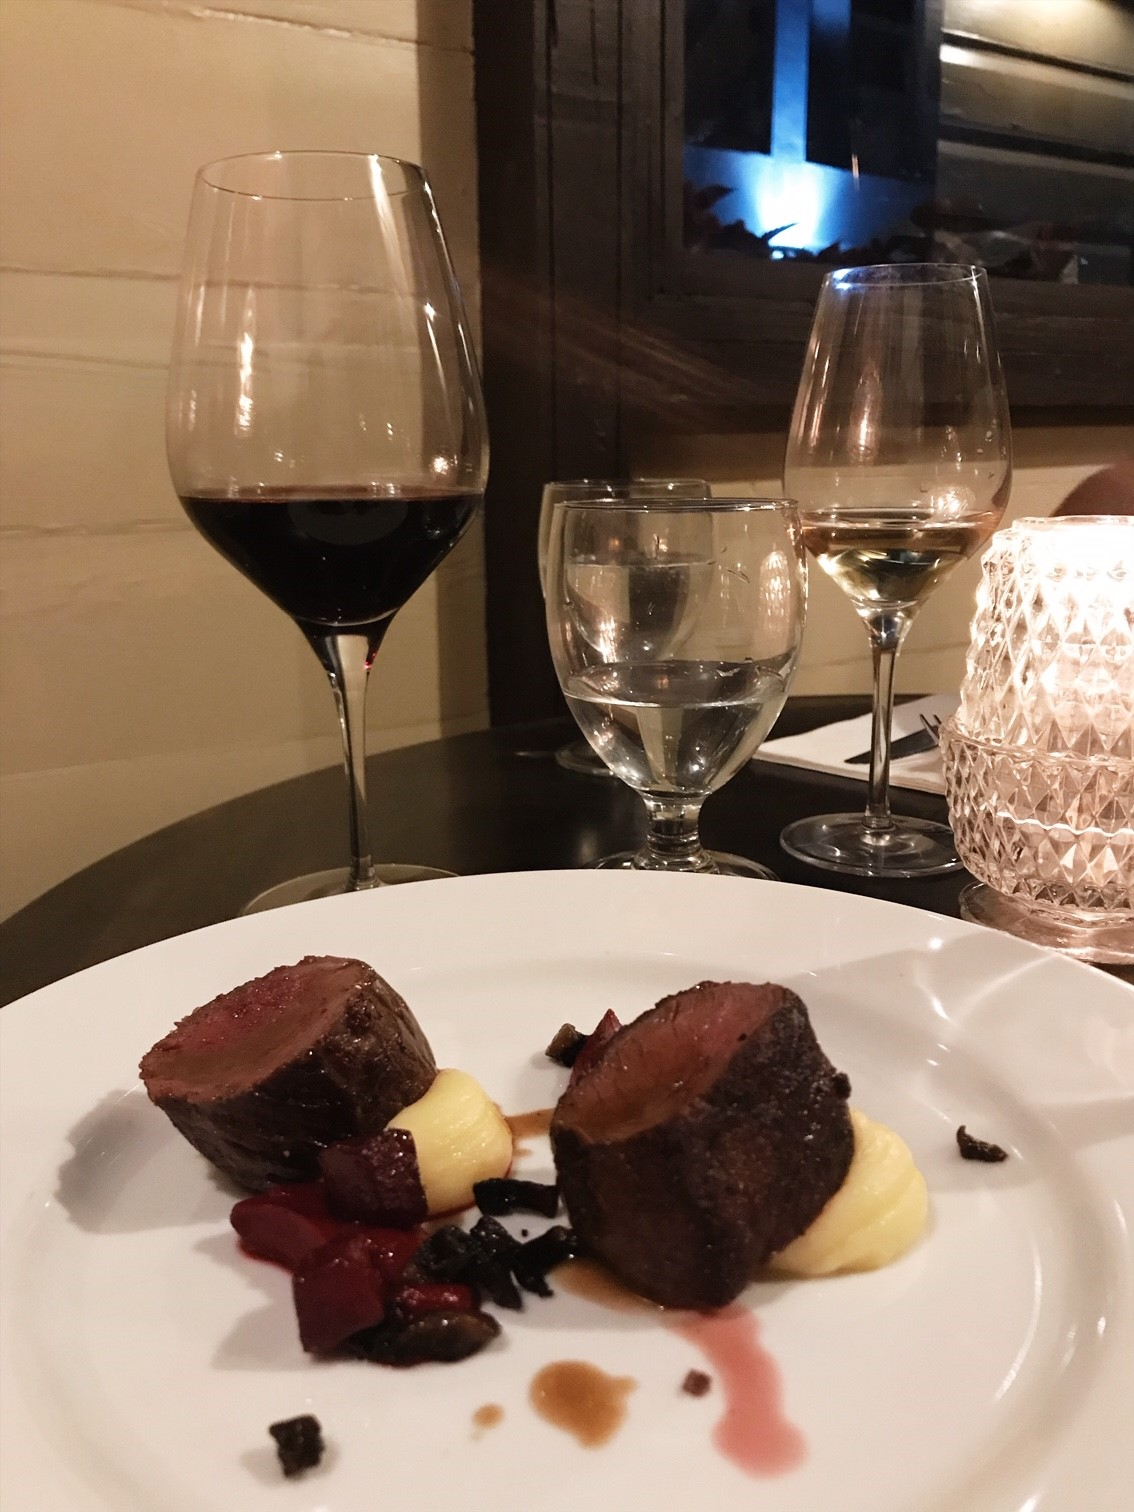 Elena Walch Wine Tasting at the Dove Restaurant - Fifth Course - Roast loin of Venison